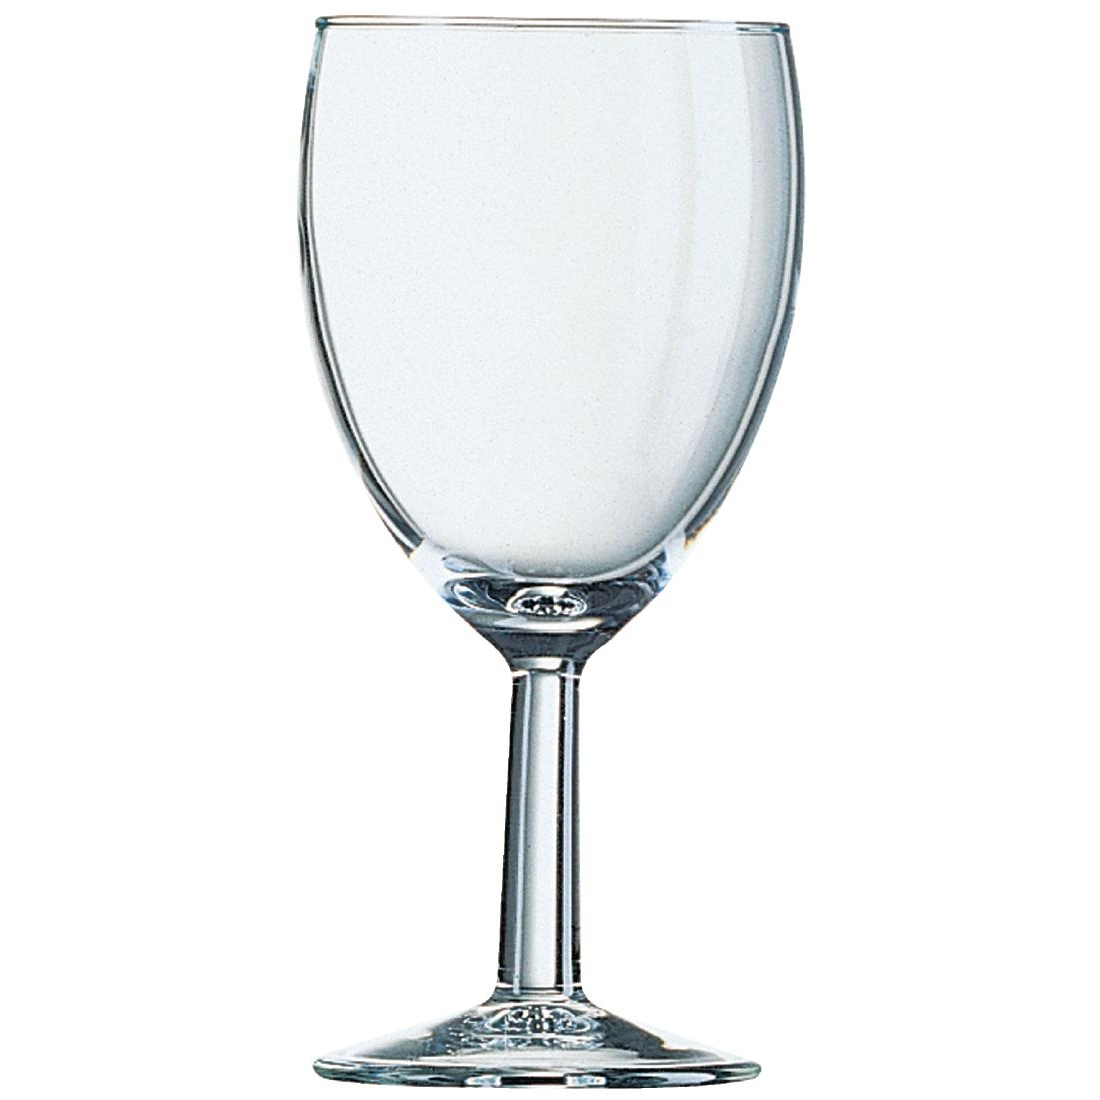 Arcoroc Savoie Wine Glasses 190ml CE Marked at 125ml